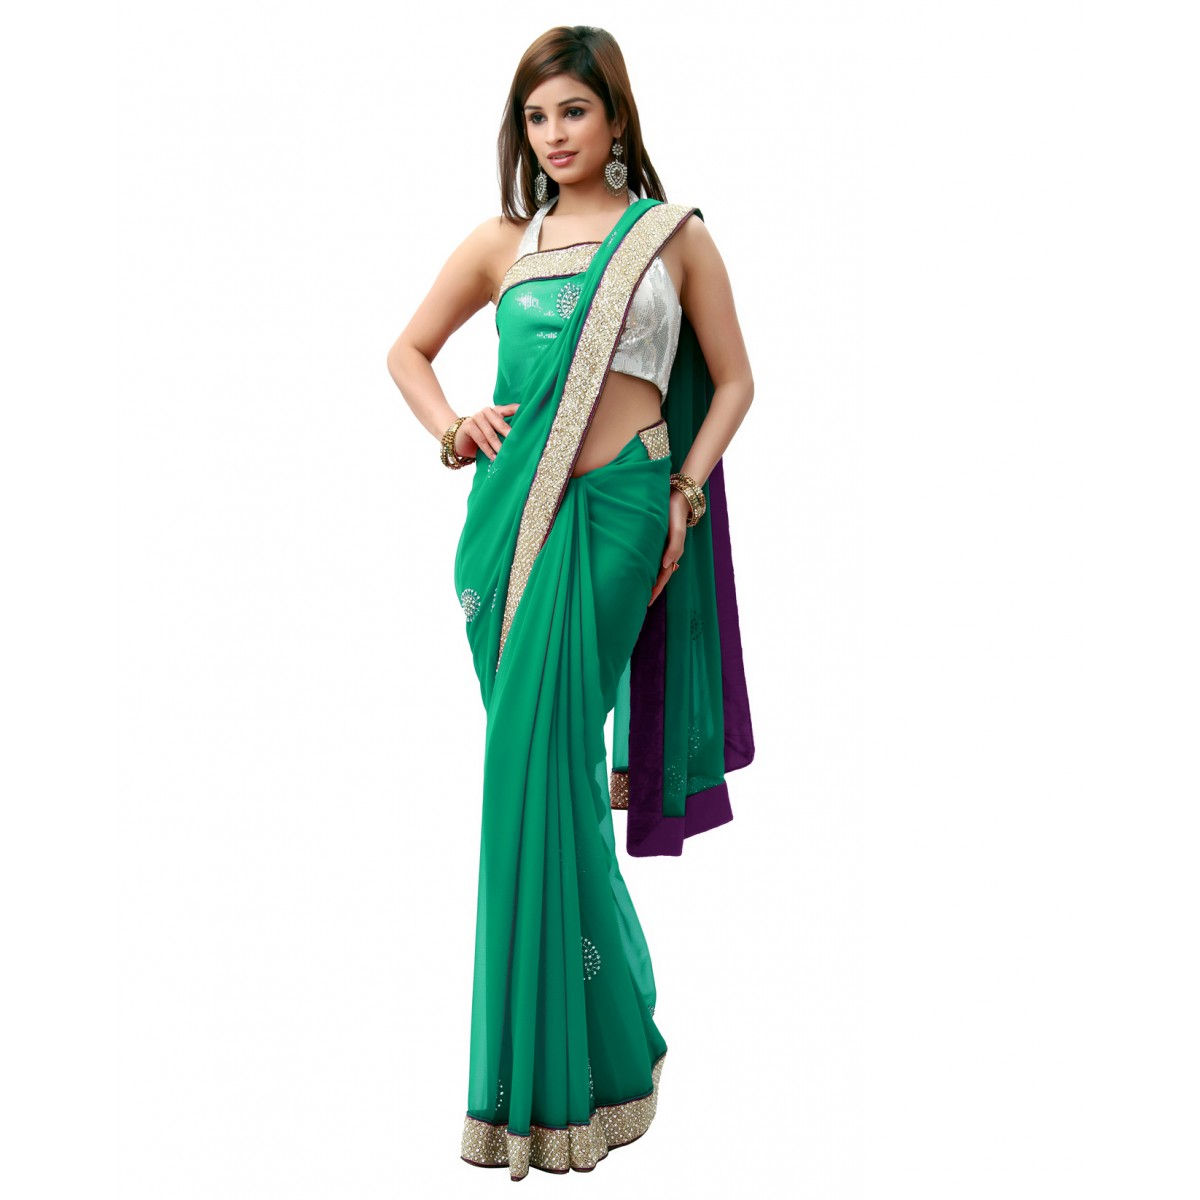 Saree Fashion Show Games